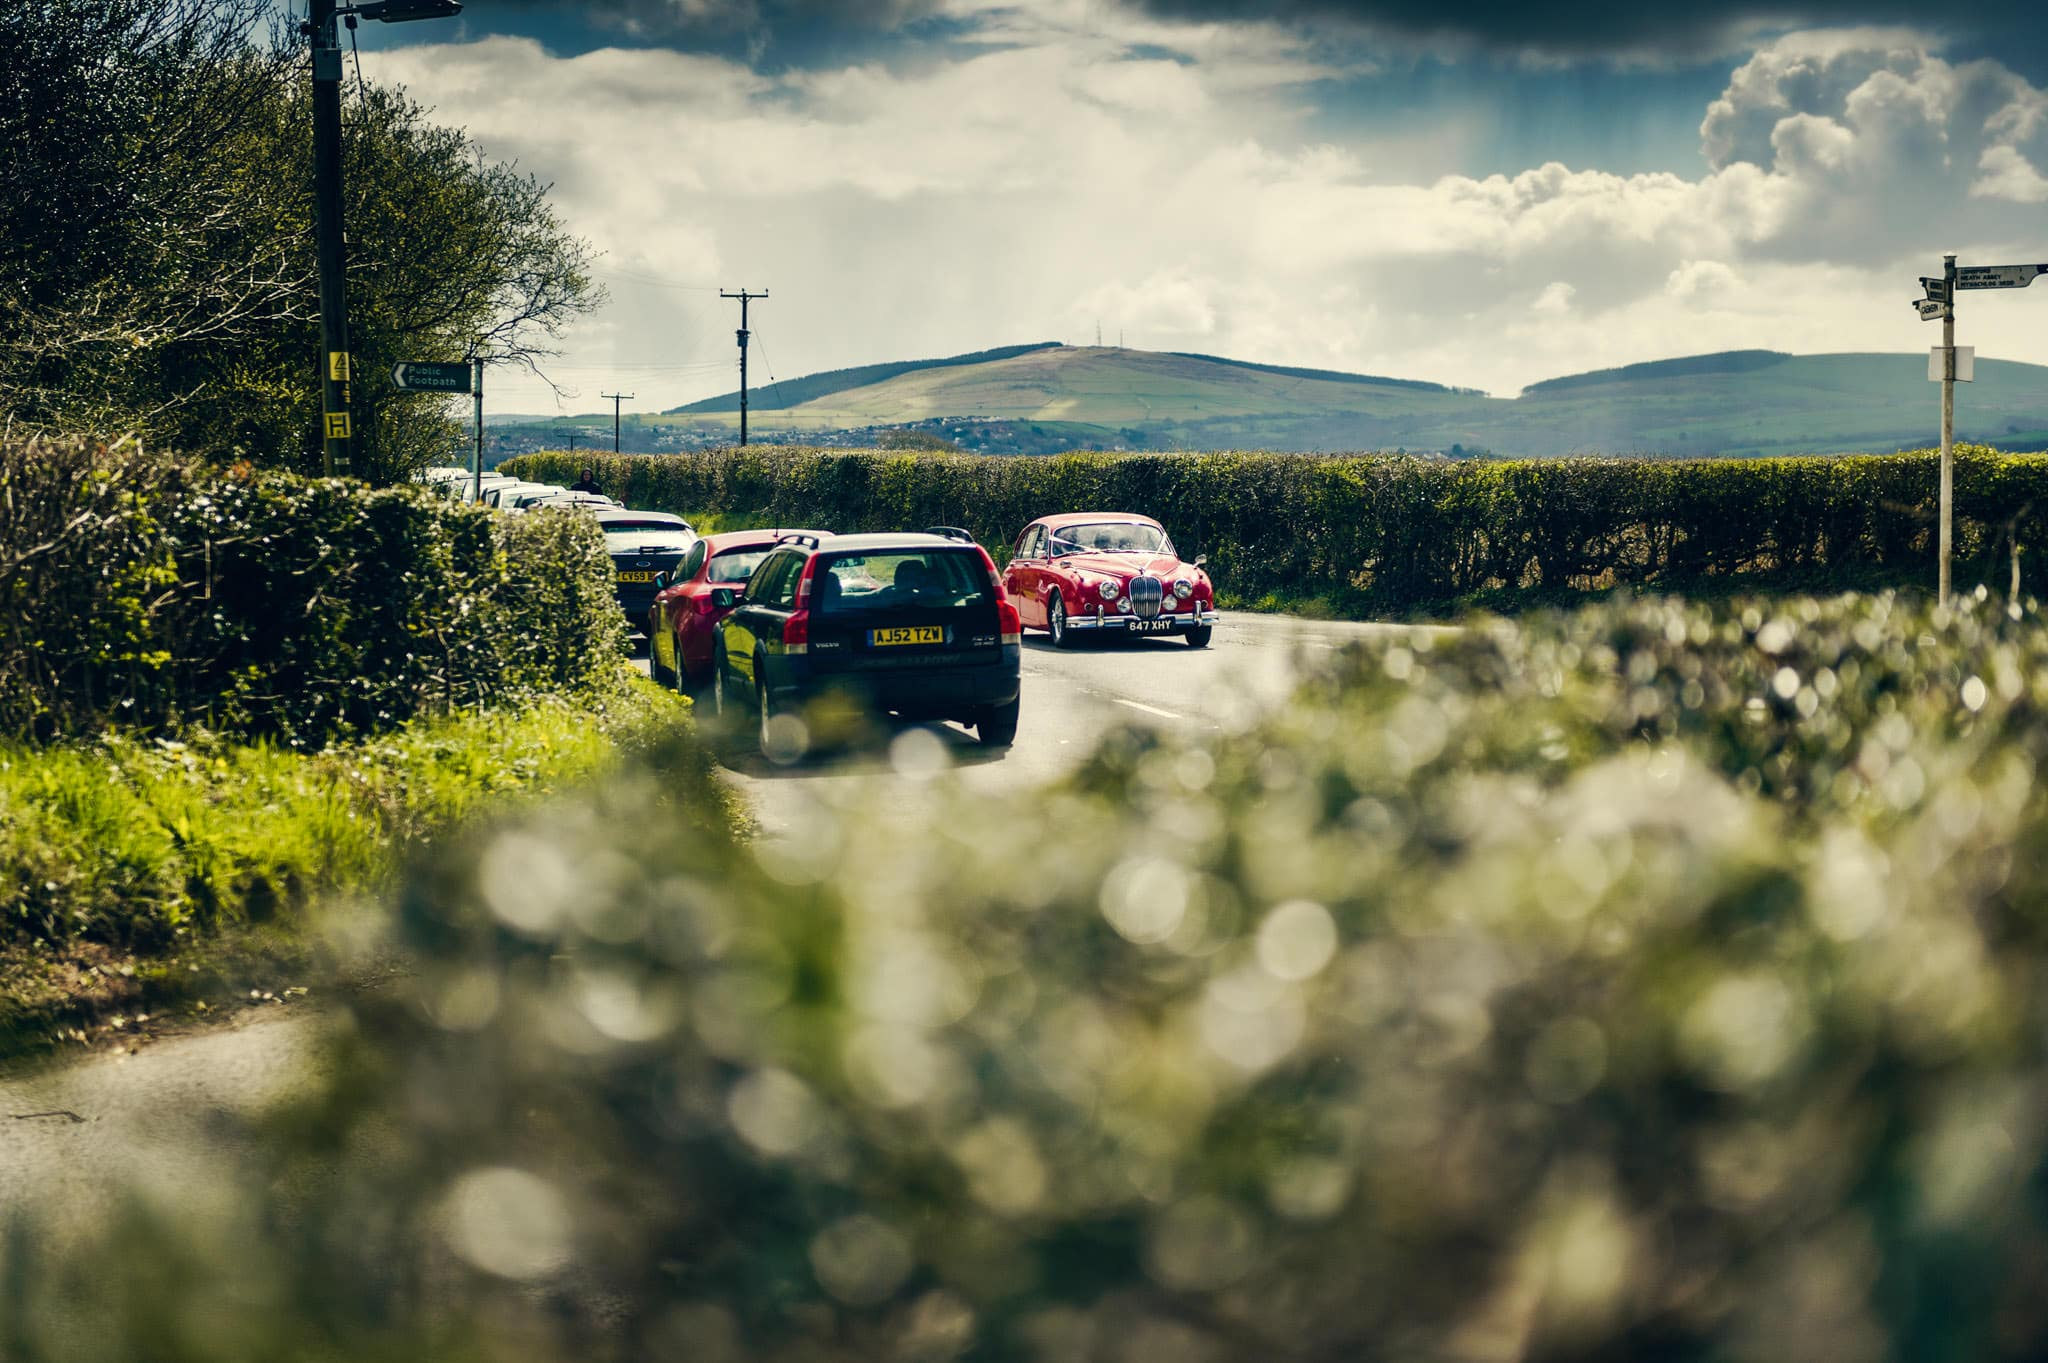 wedding-photography-morgans-hotel-swansea-south-wales (10)